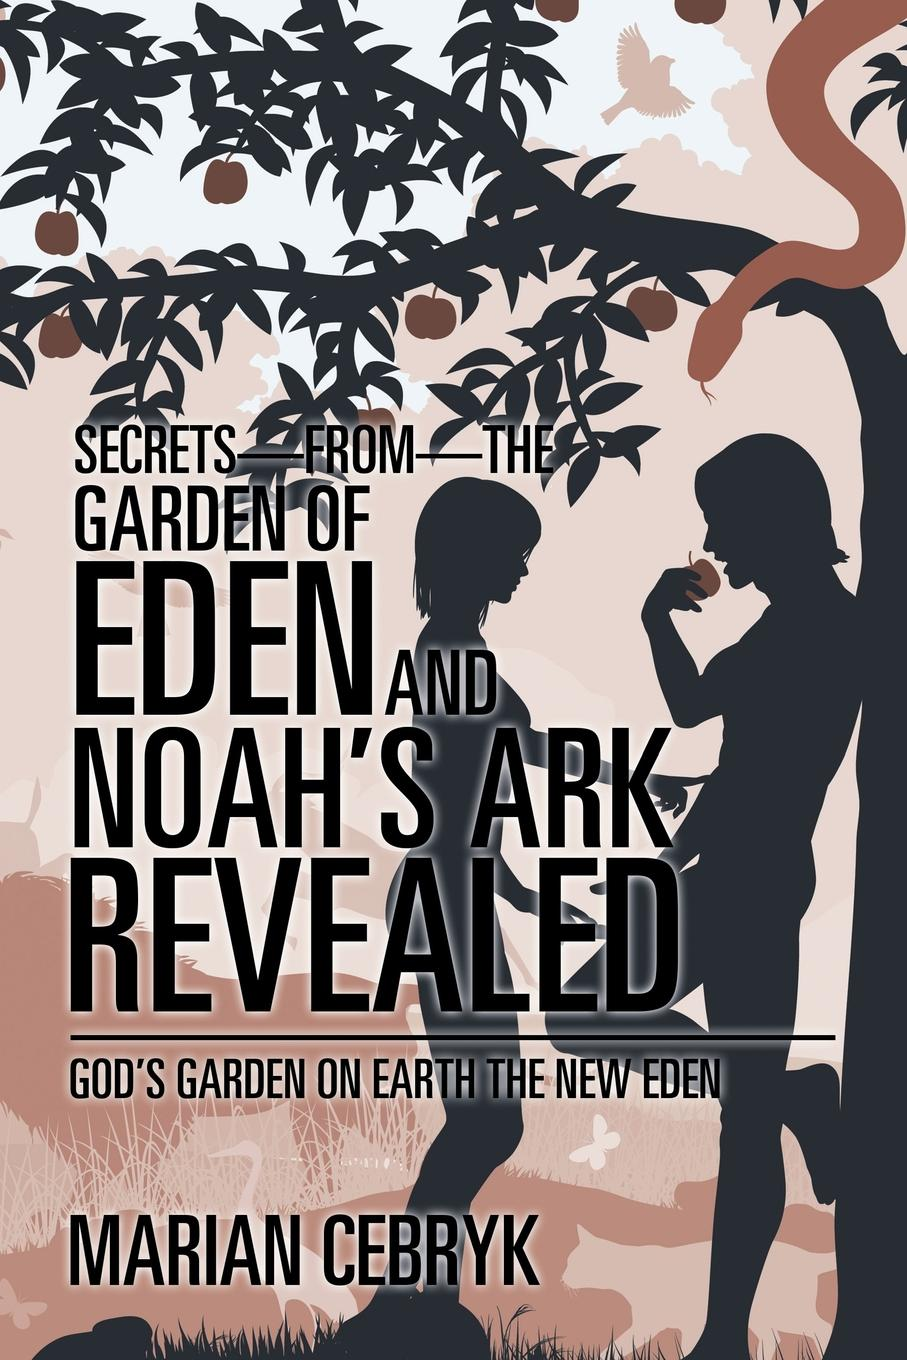 Marian Cebryk Secrets-from-the Garden of Eden and Noah.s Ark Revealed. God.s Garden on Earth the New Eden get me out a history of childbirth from the garden of eden to the sperm bank